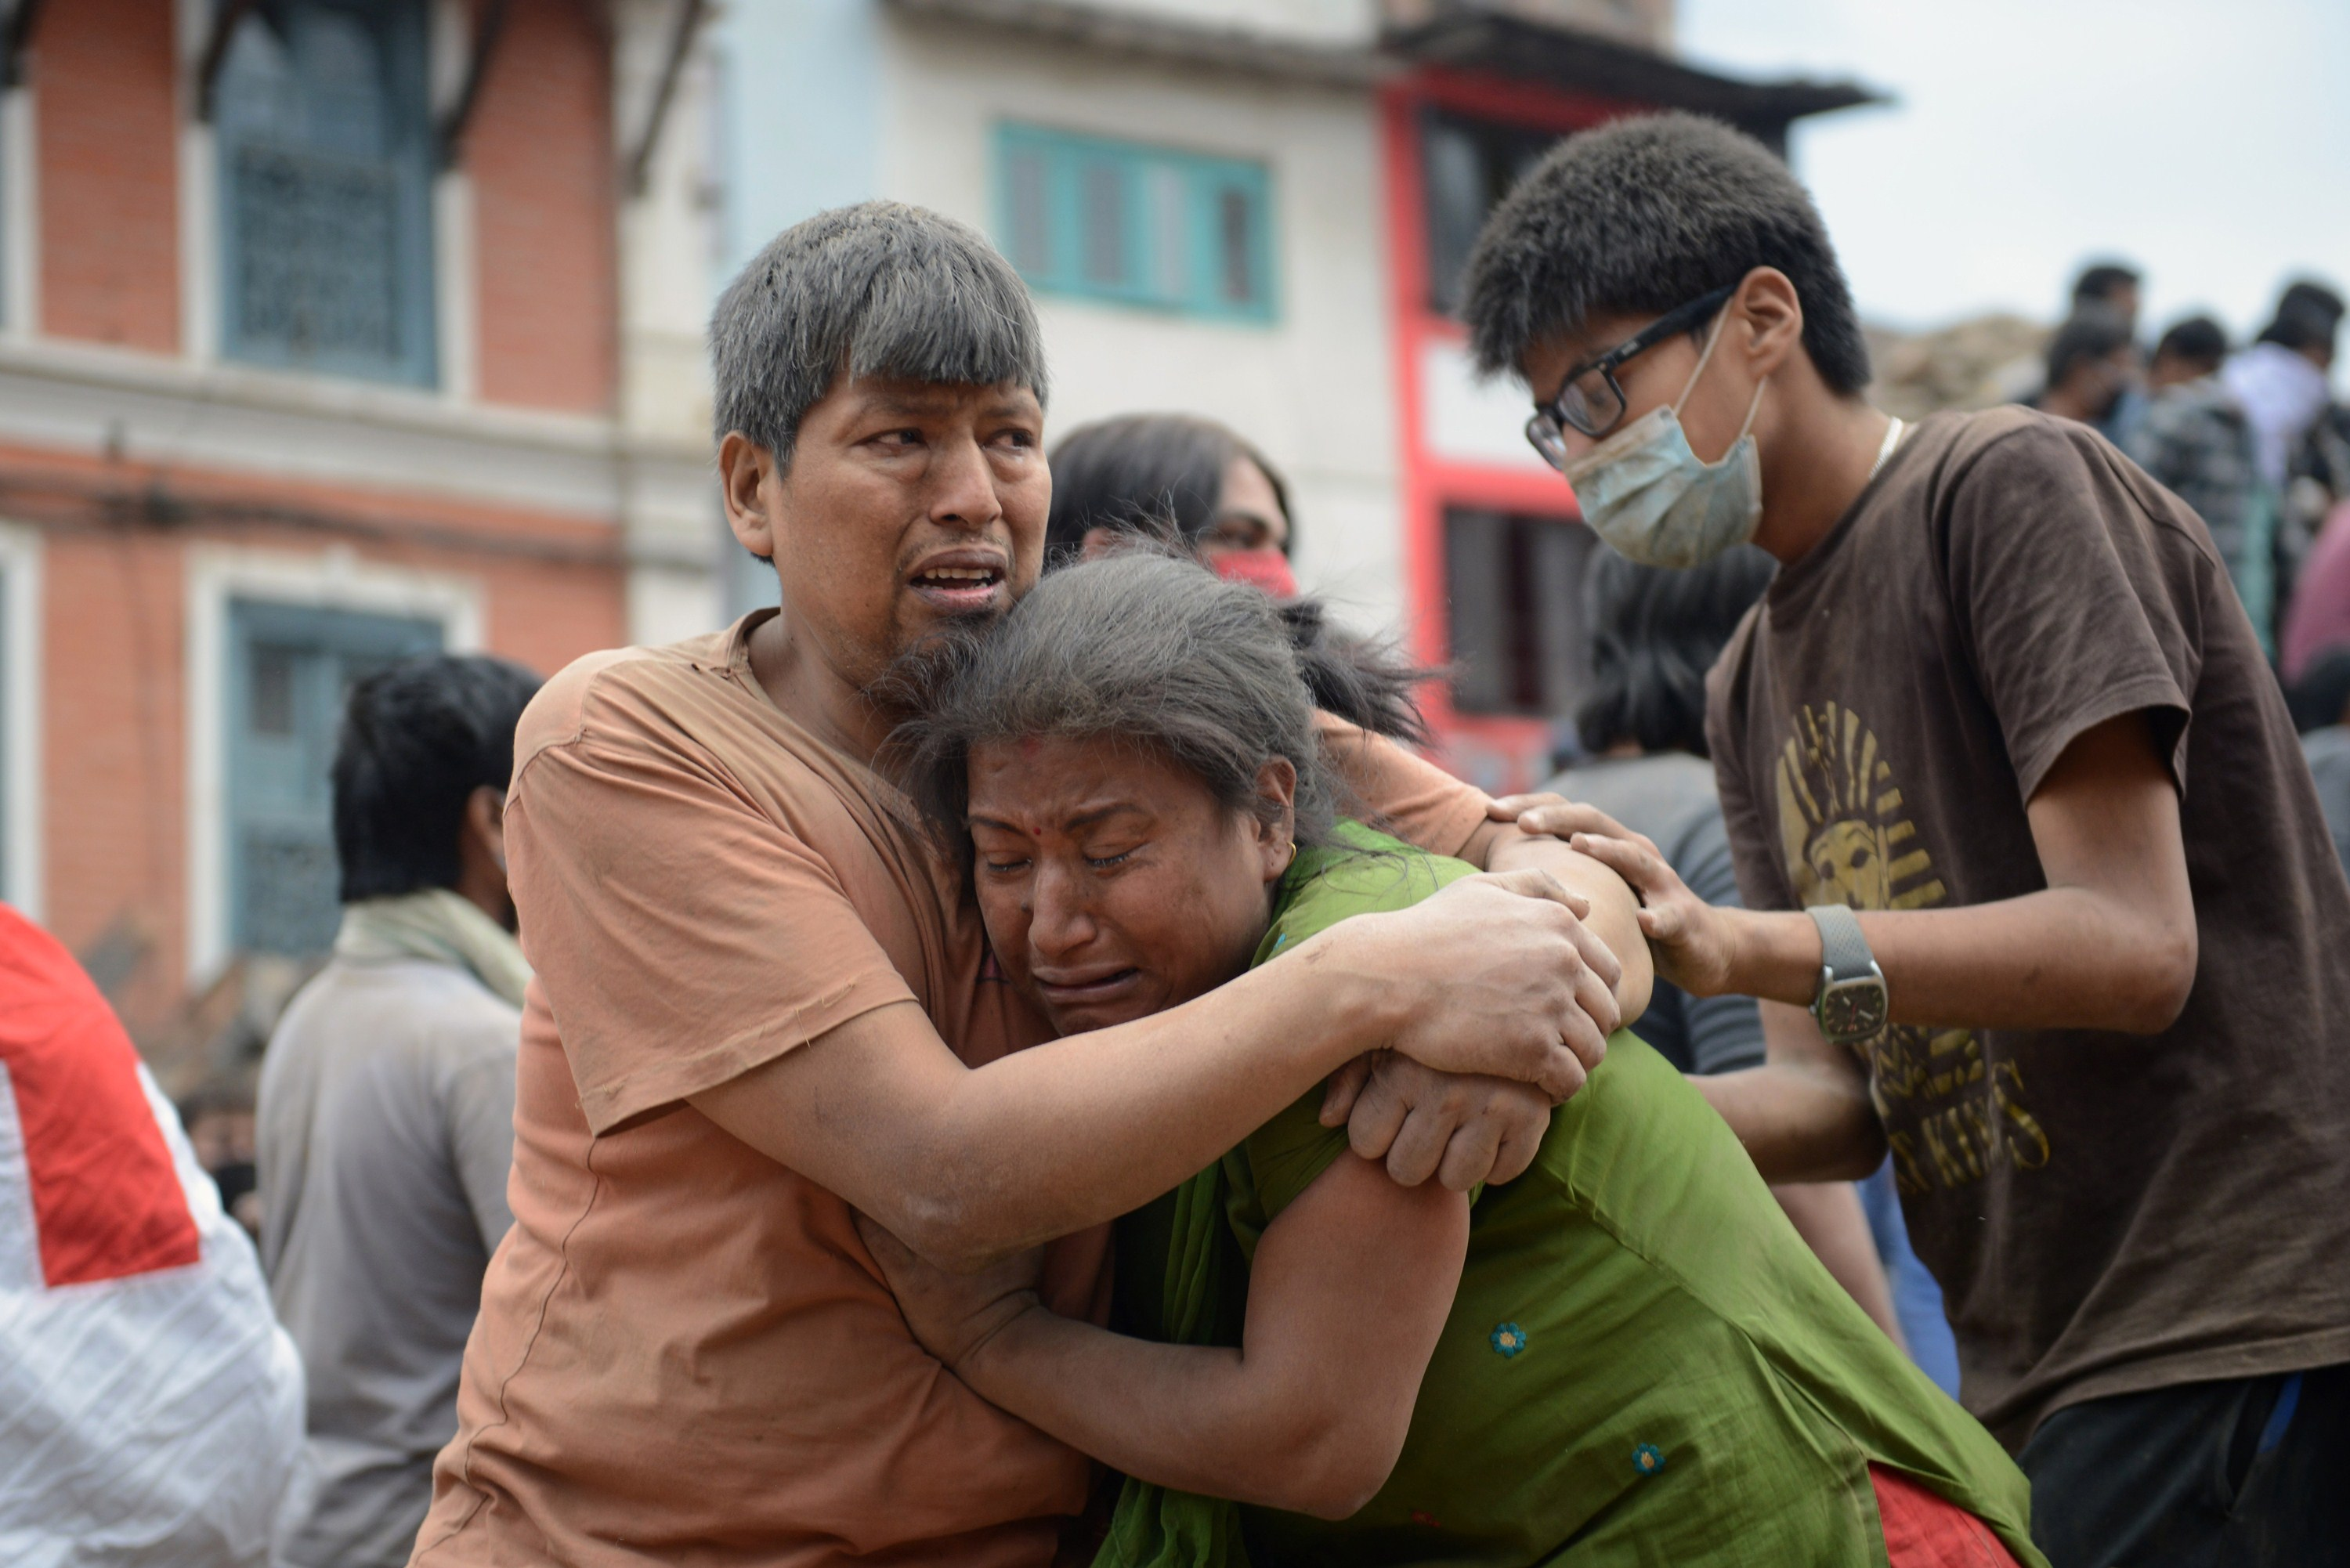 Chinese State Media Lies About Free Tickets Home for Chinese in Nepal